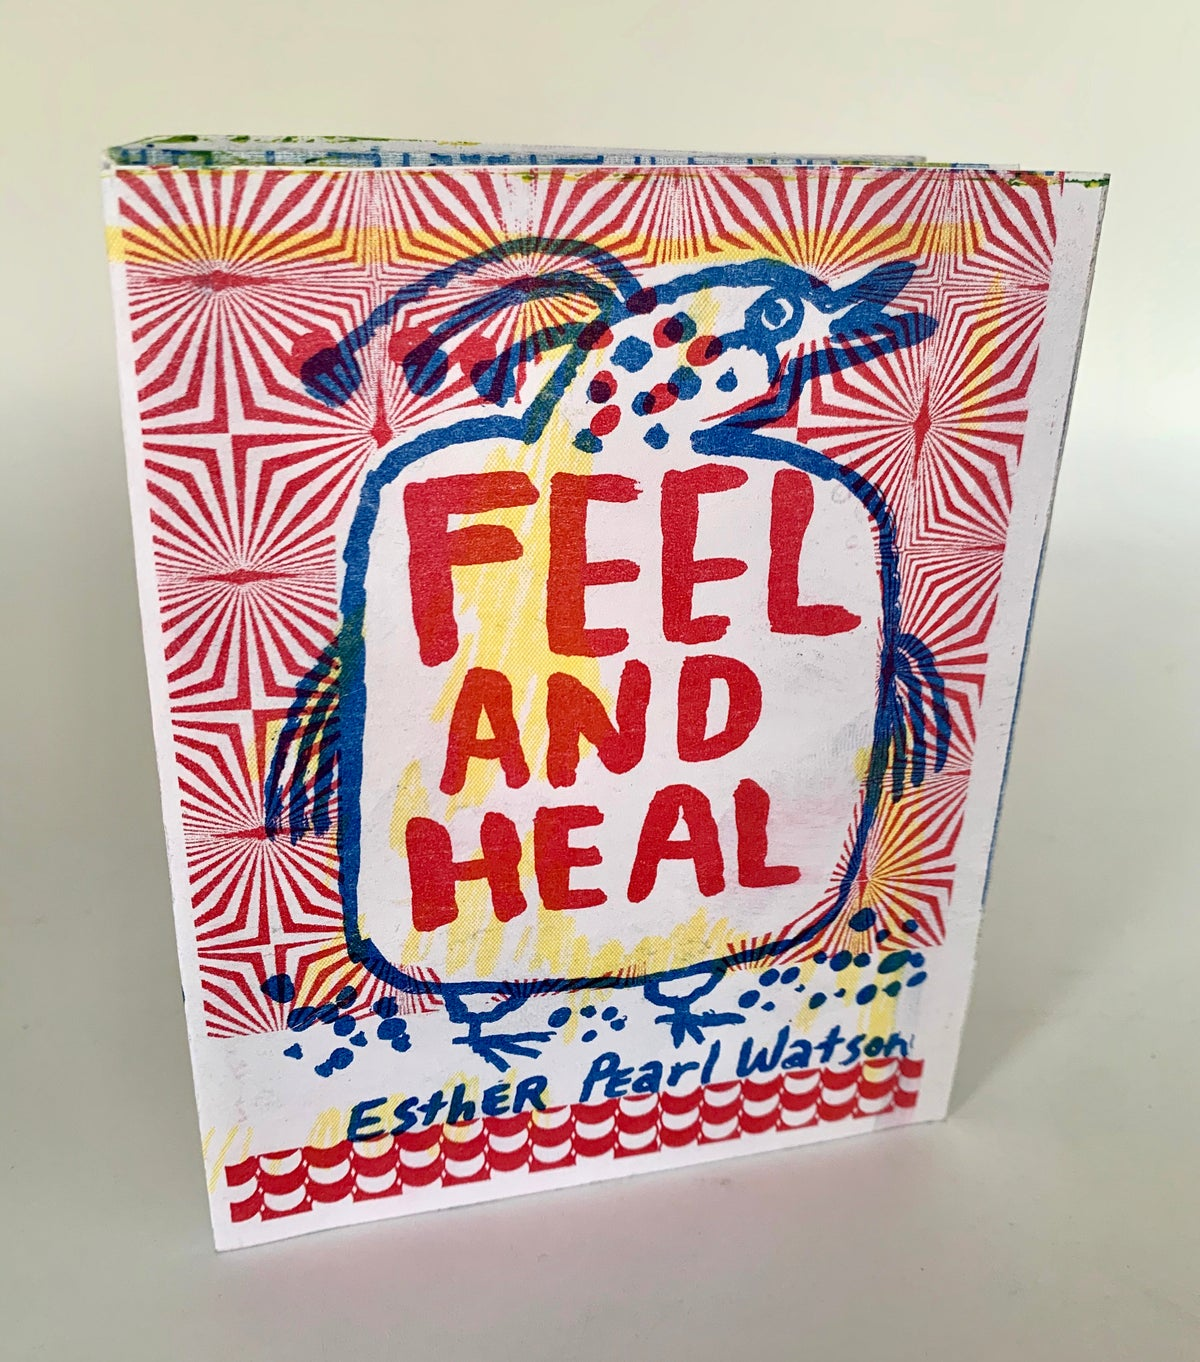 (Esther Pearl Watson) Feel and Heal Zine